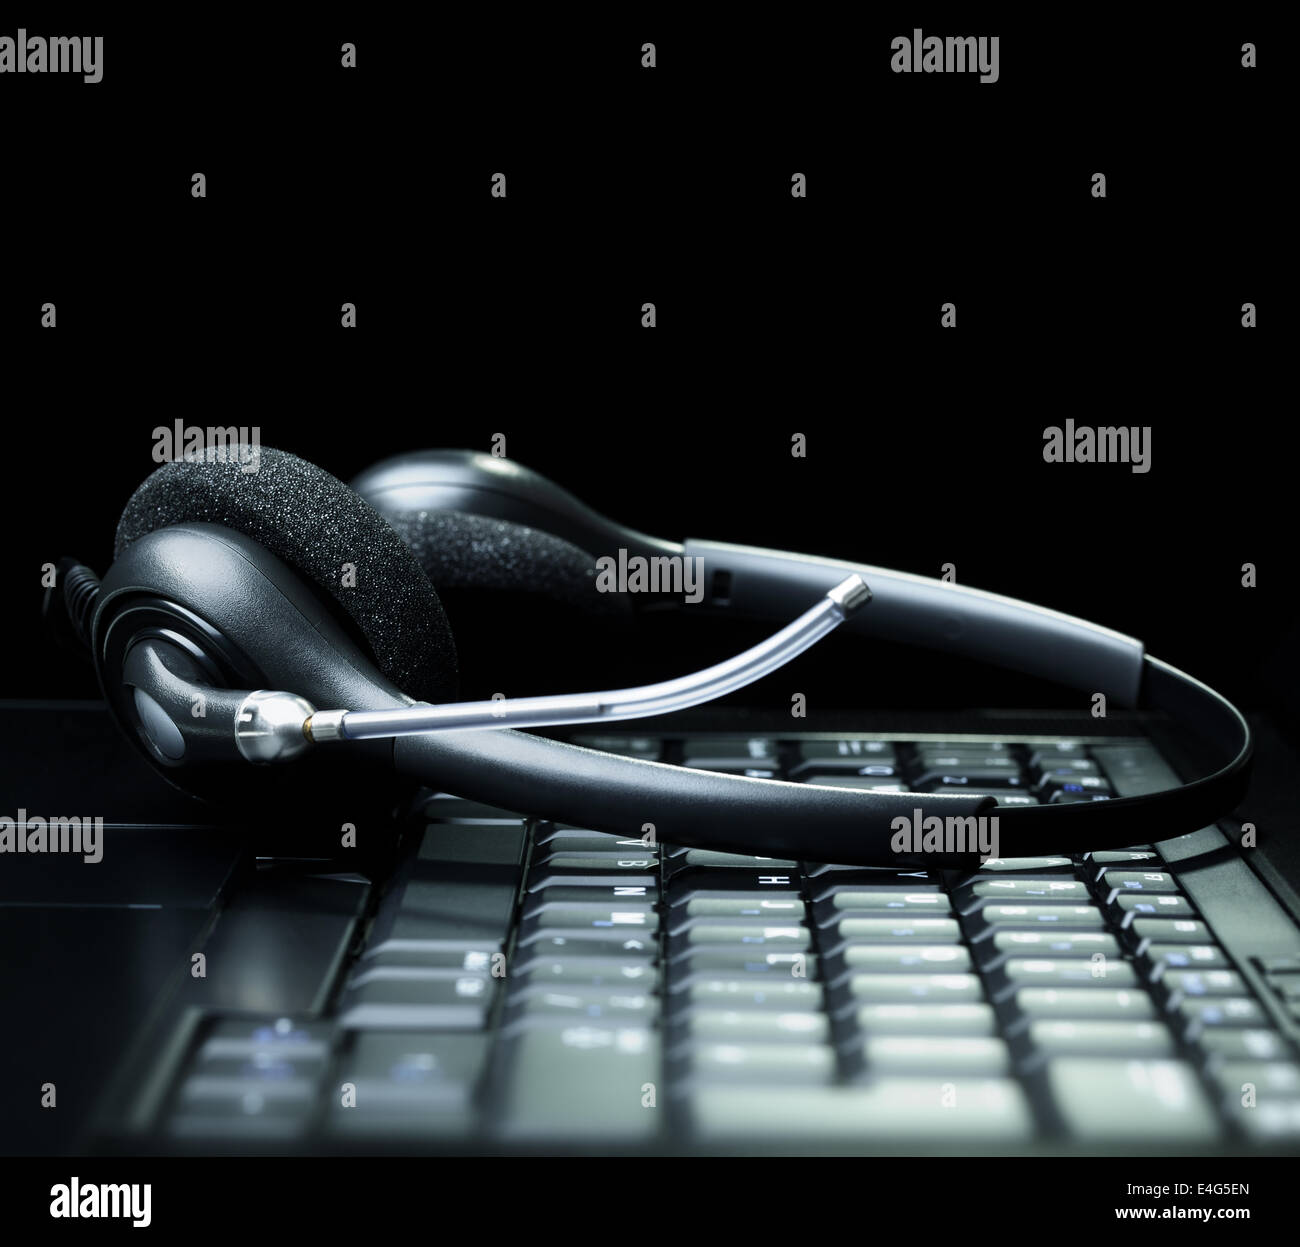 Headset on a laptop computer keyboard - Stock Image